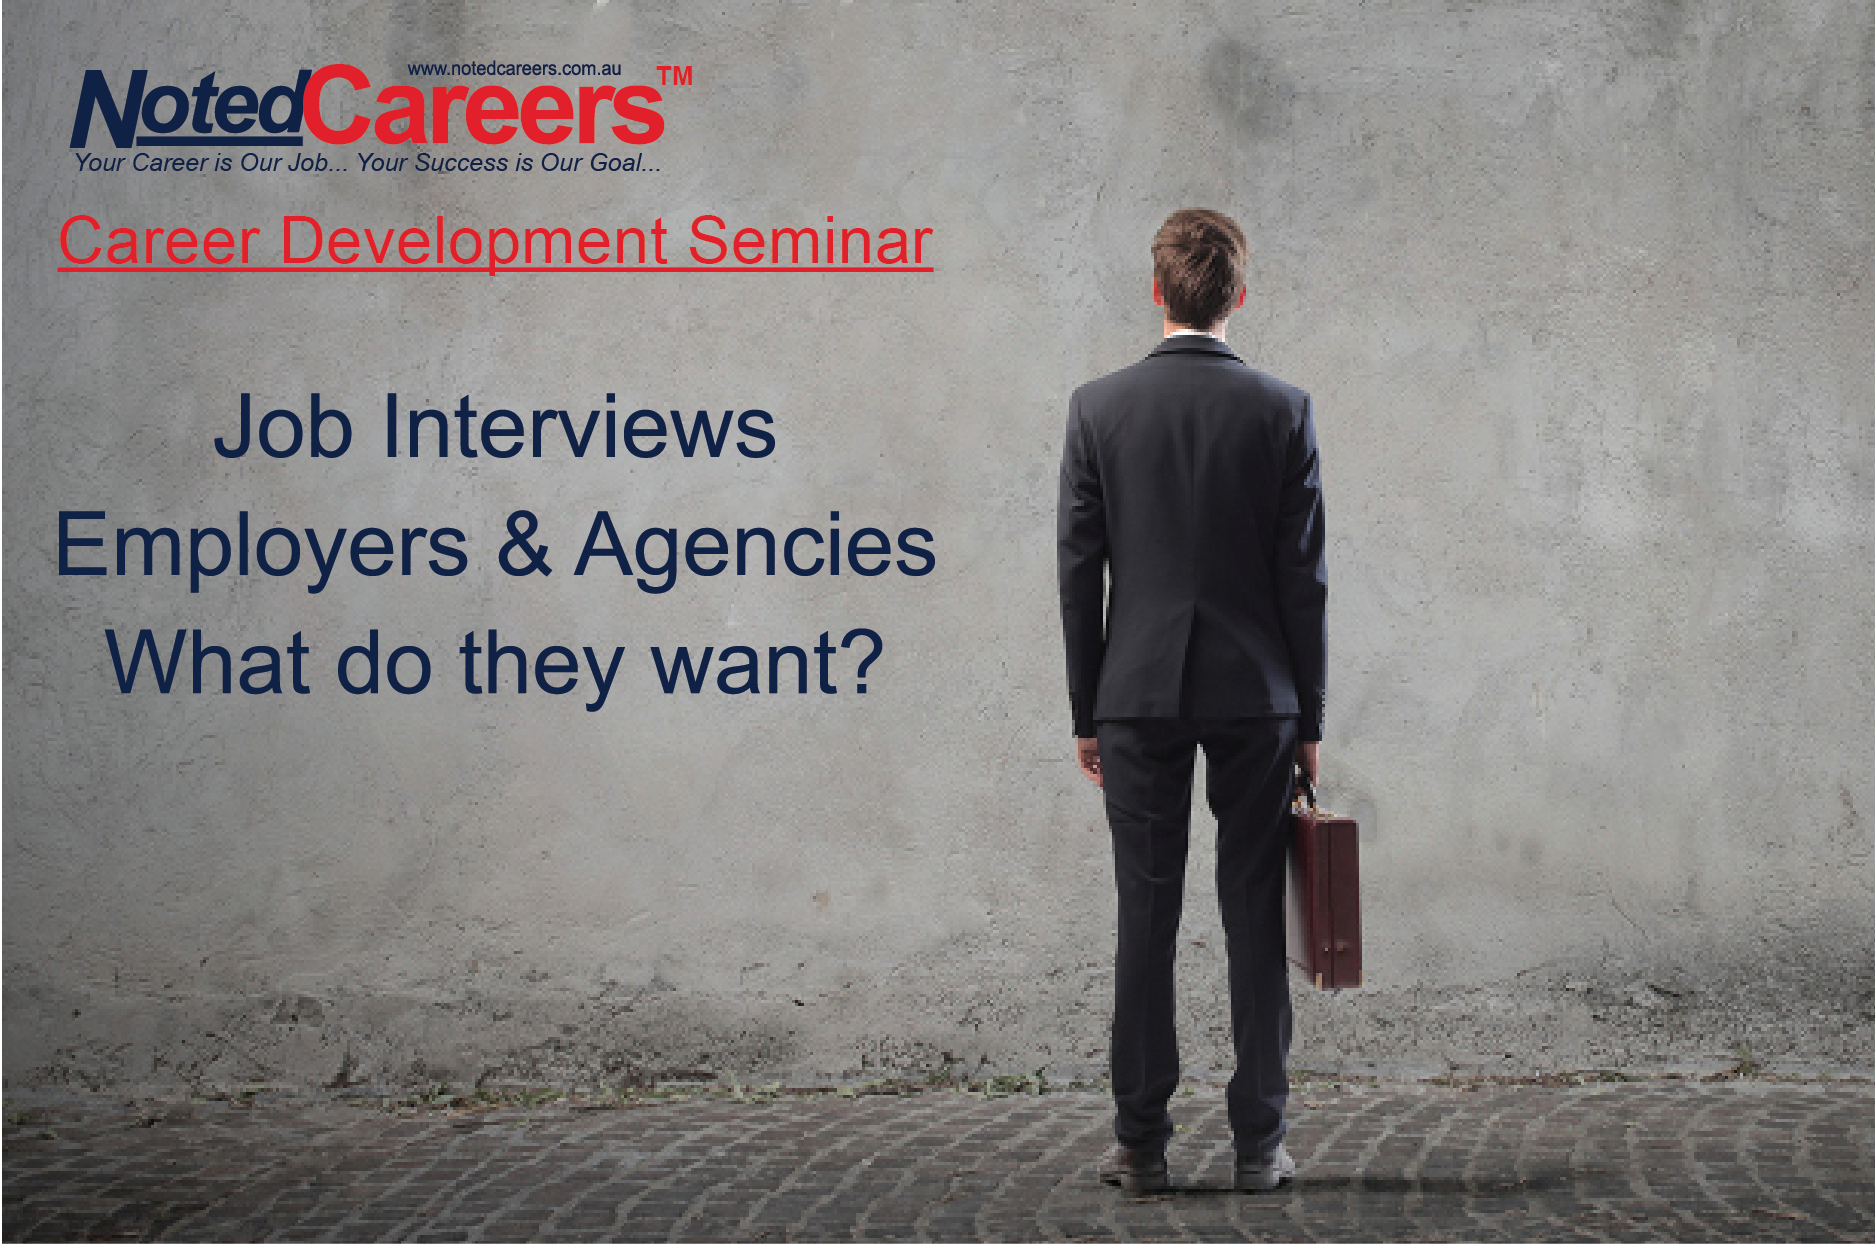 Job Interviews Employers & Agencies, what do they want?